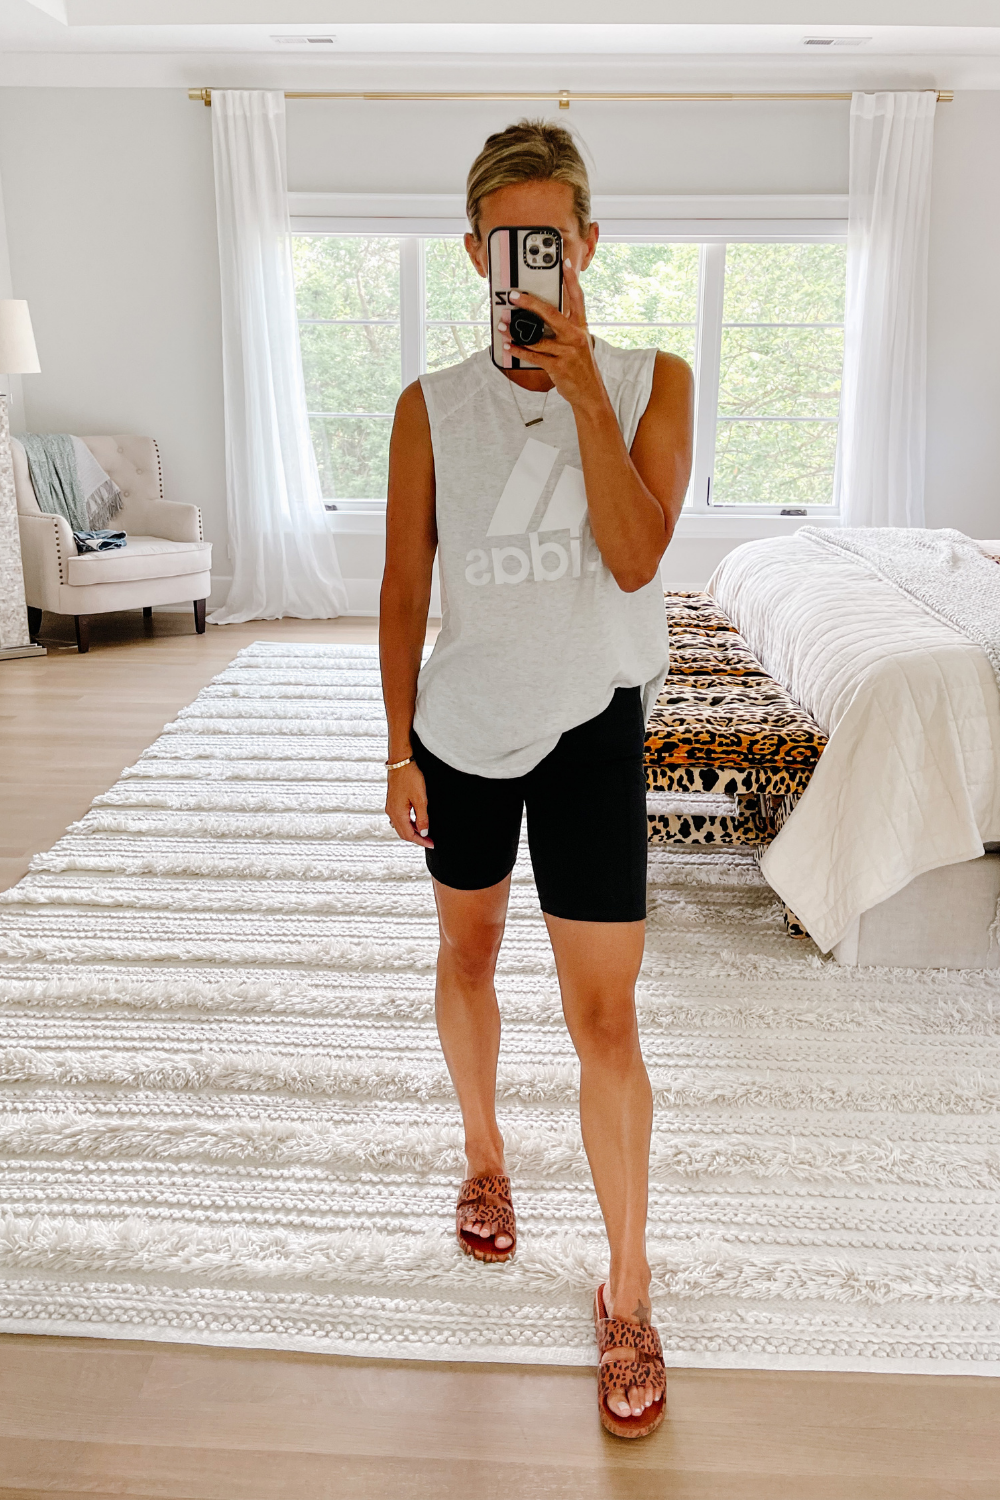 August #ootd round up: Adidas tank and biker shorts